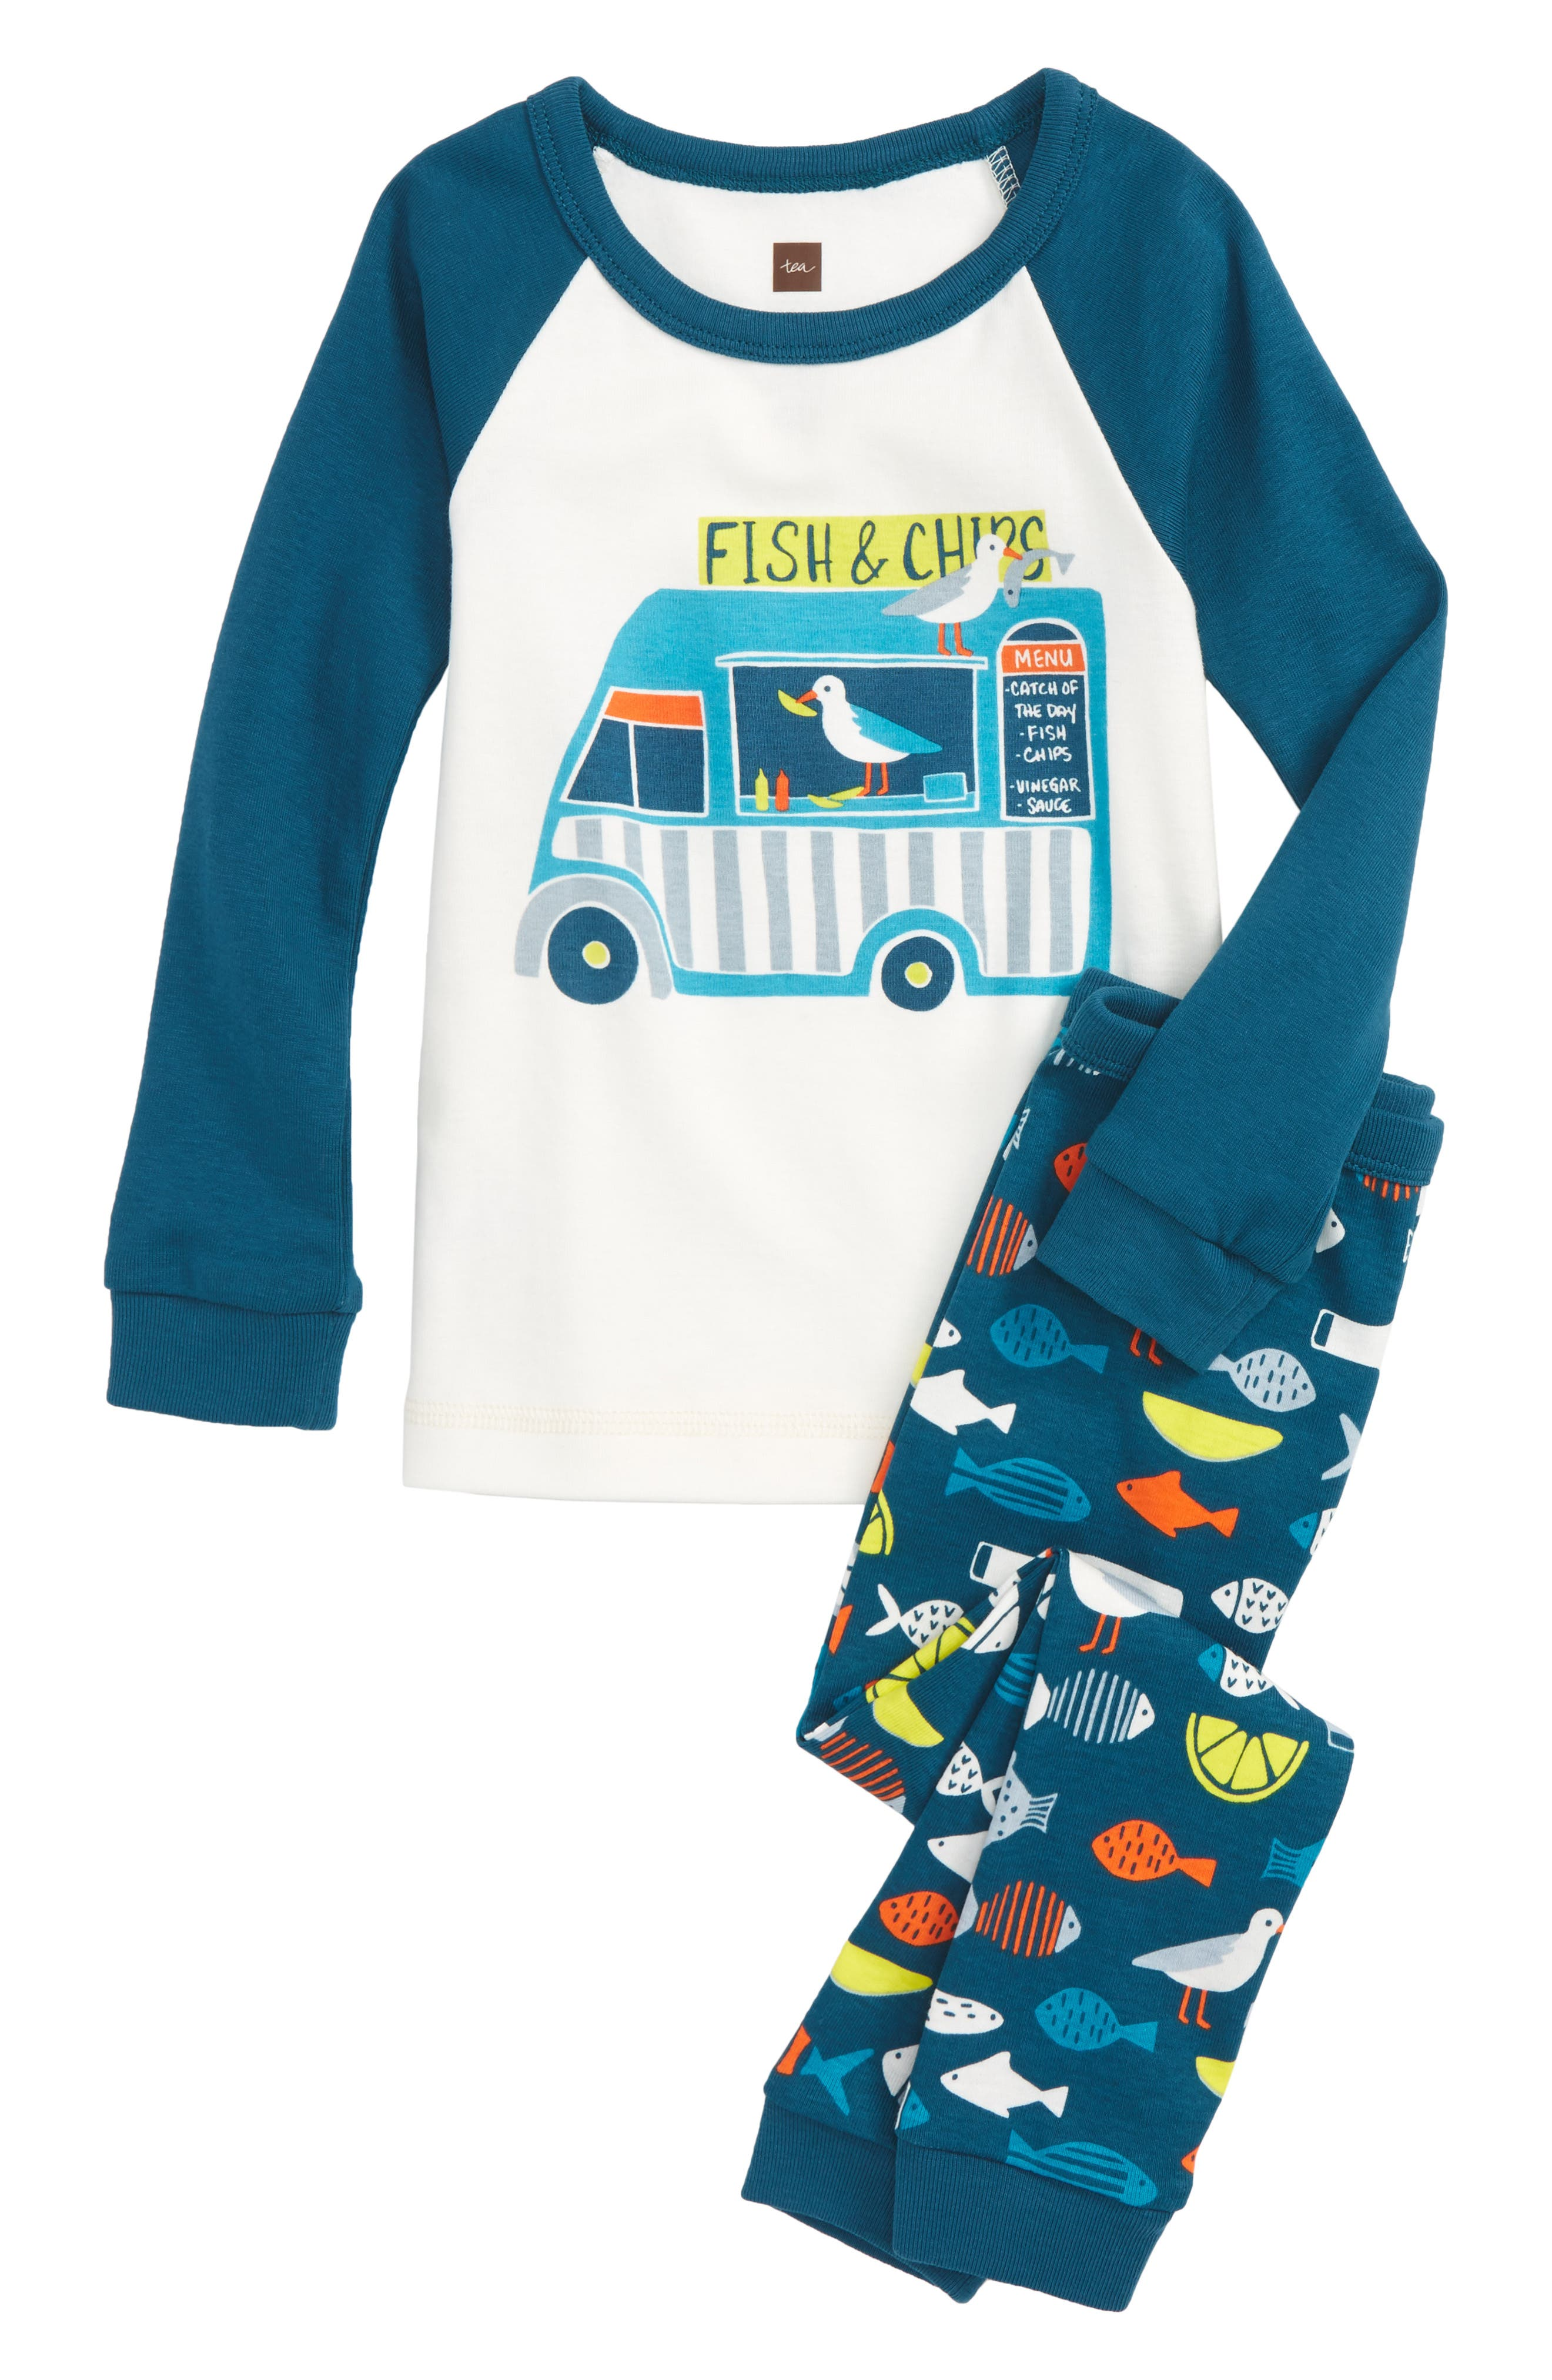 Fish & Chips Fitted Two-Piece Pajamas,                         Main,                         color, Chalk